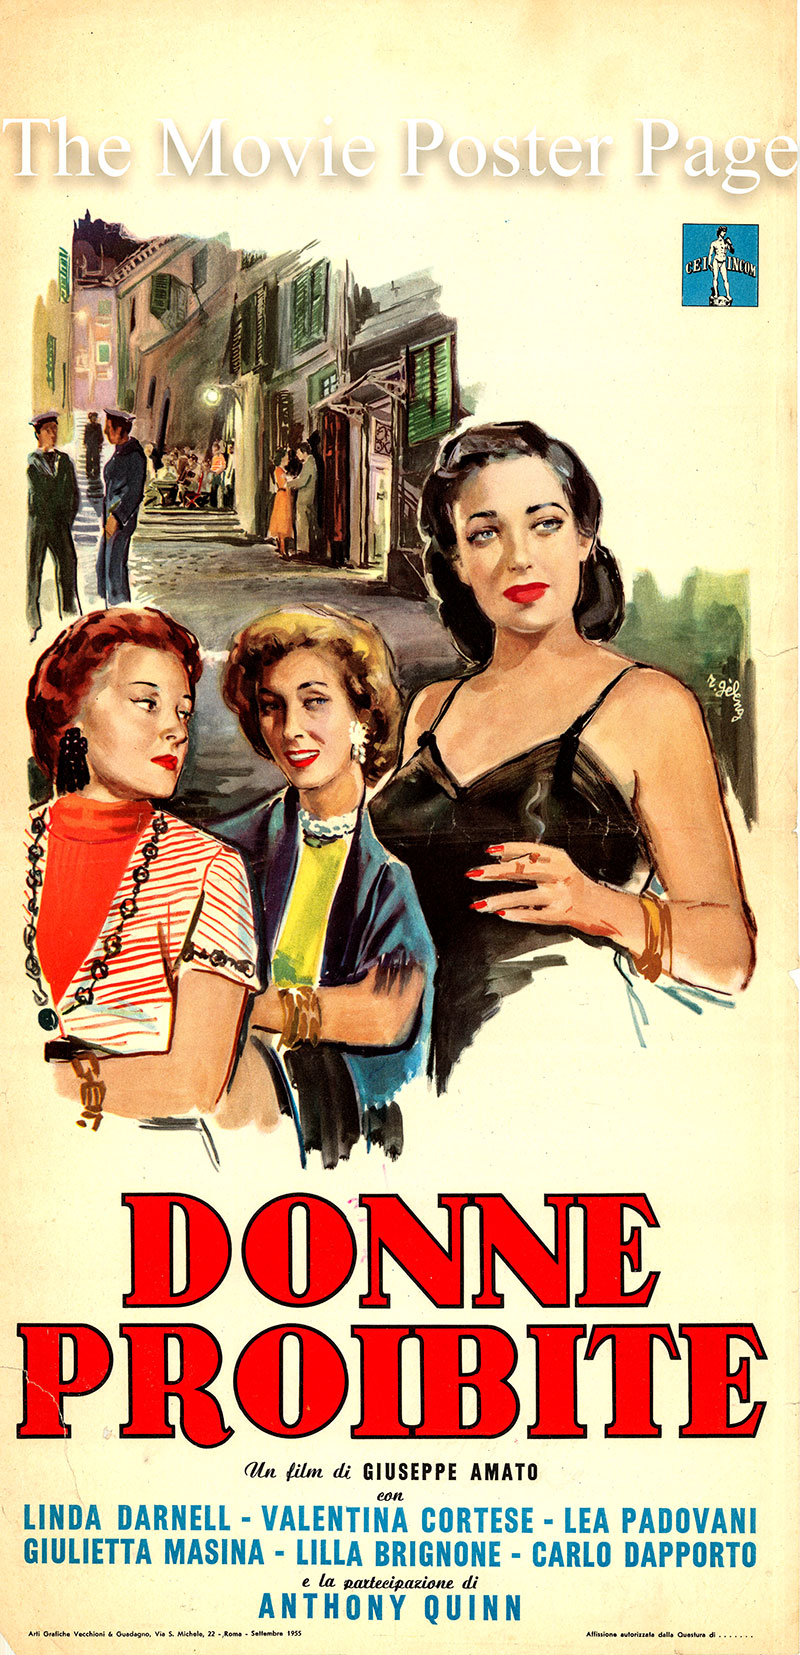 Pictured is an Italian locandina poster for the 1954 Giuseppe Amato film Angels of Darkness starring Linda Darnell as Lola Baldi.